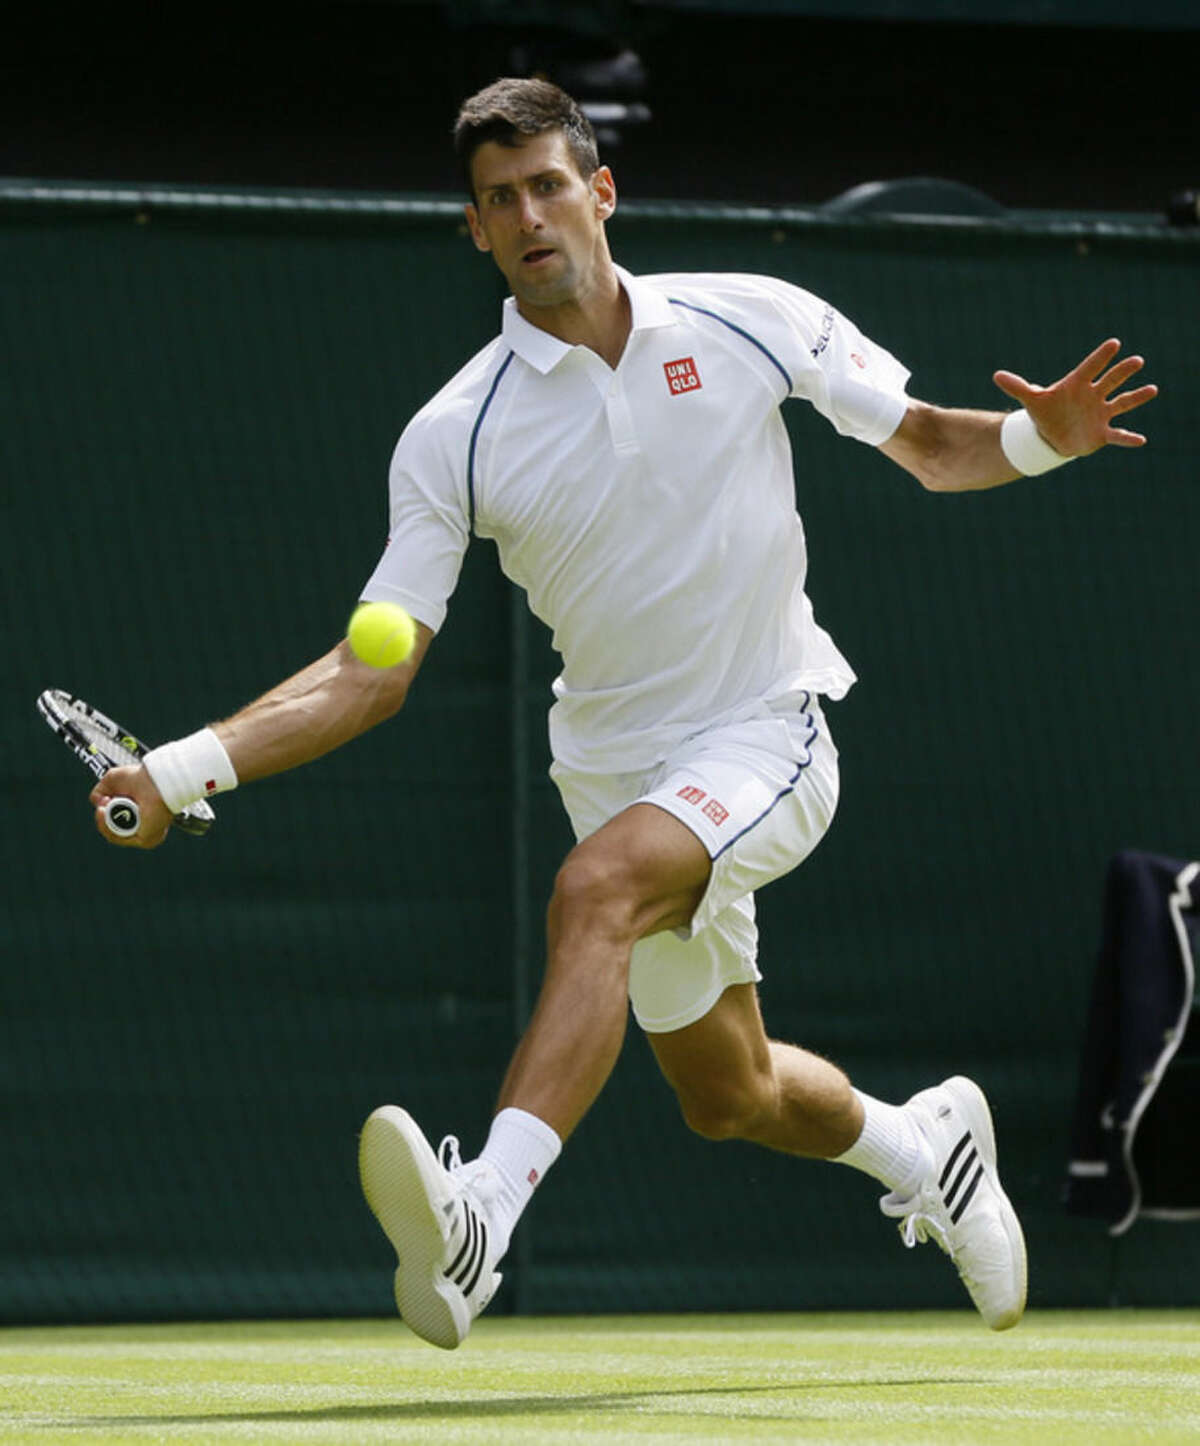 Novak Djokovic of Serbia plays a return to Philipp Kohlschreiber of Germany during the men's singles first round match at the All England Lawn Tennis Championships in Wimbledon, London, Monday June 29, 2015. (AP Photo/Kirsty Wigglesworth)